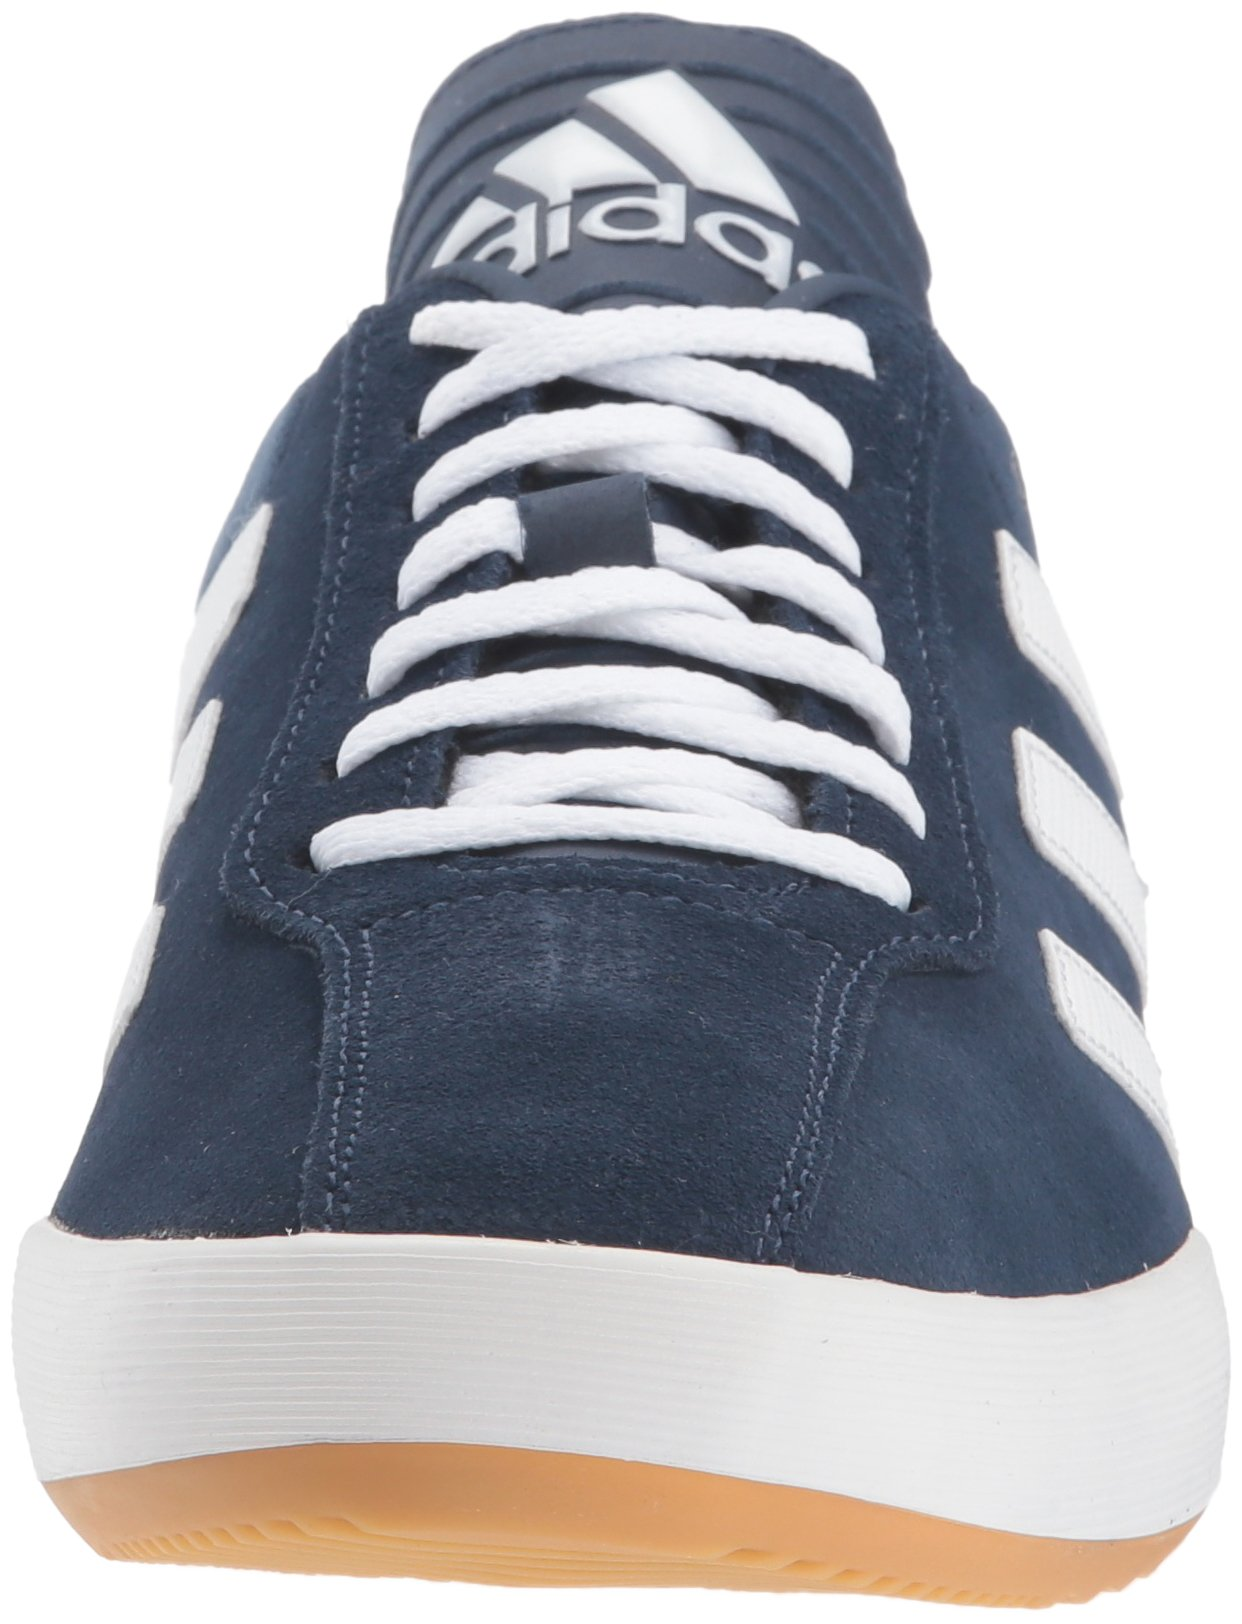 adidas Men's Copa Super Soccer Shoe White/Collegiate Navy, 7 M US by adidas (Image #4)